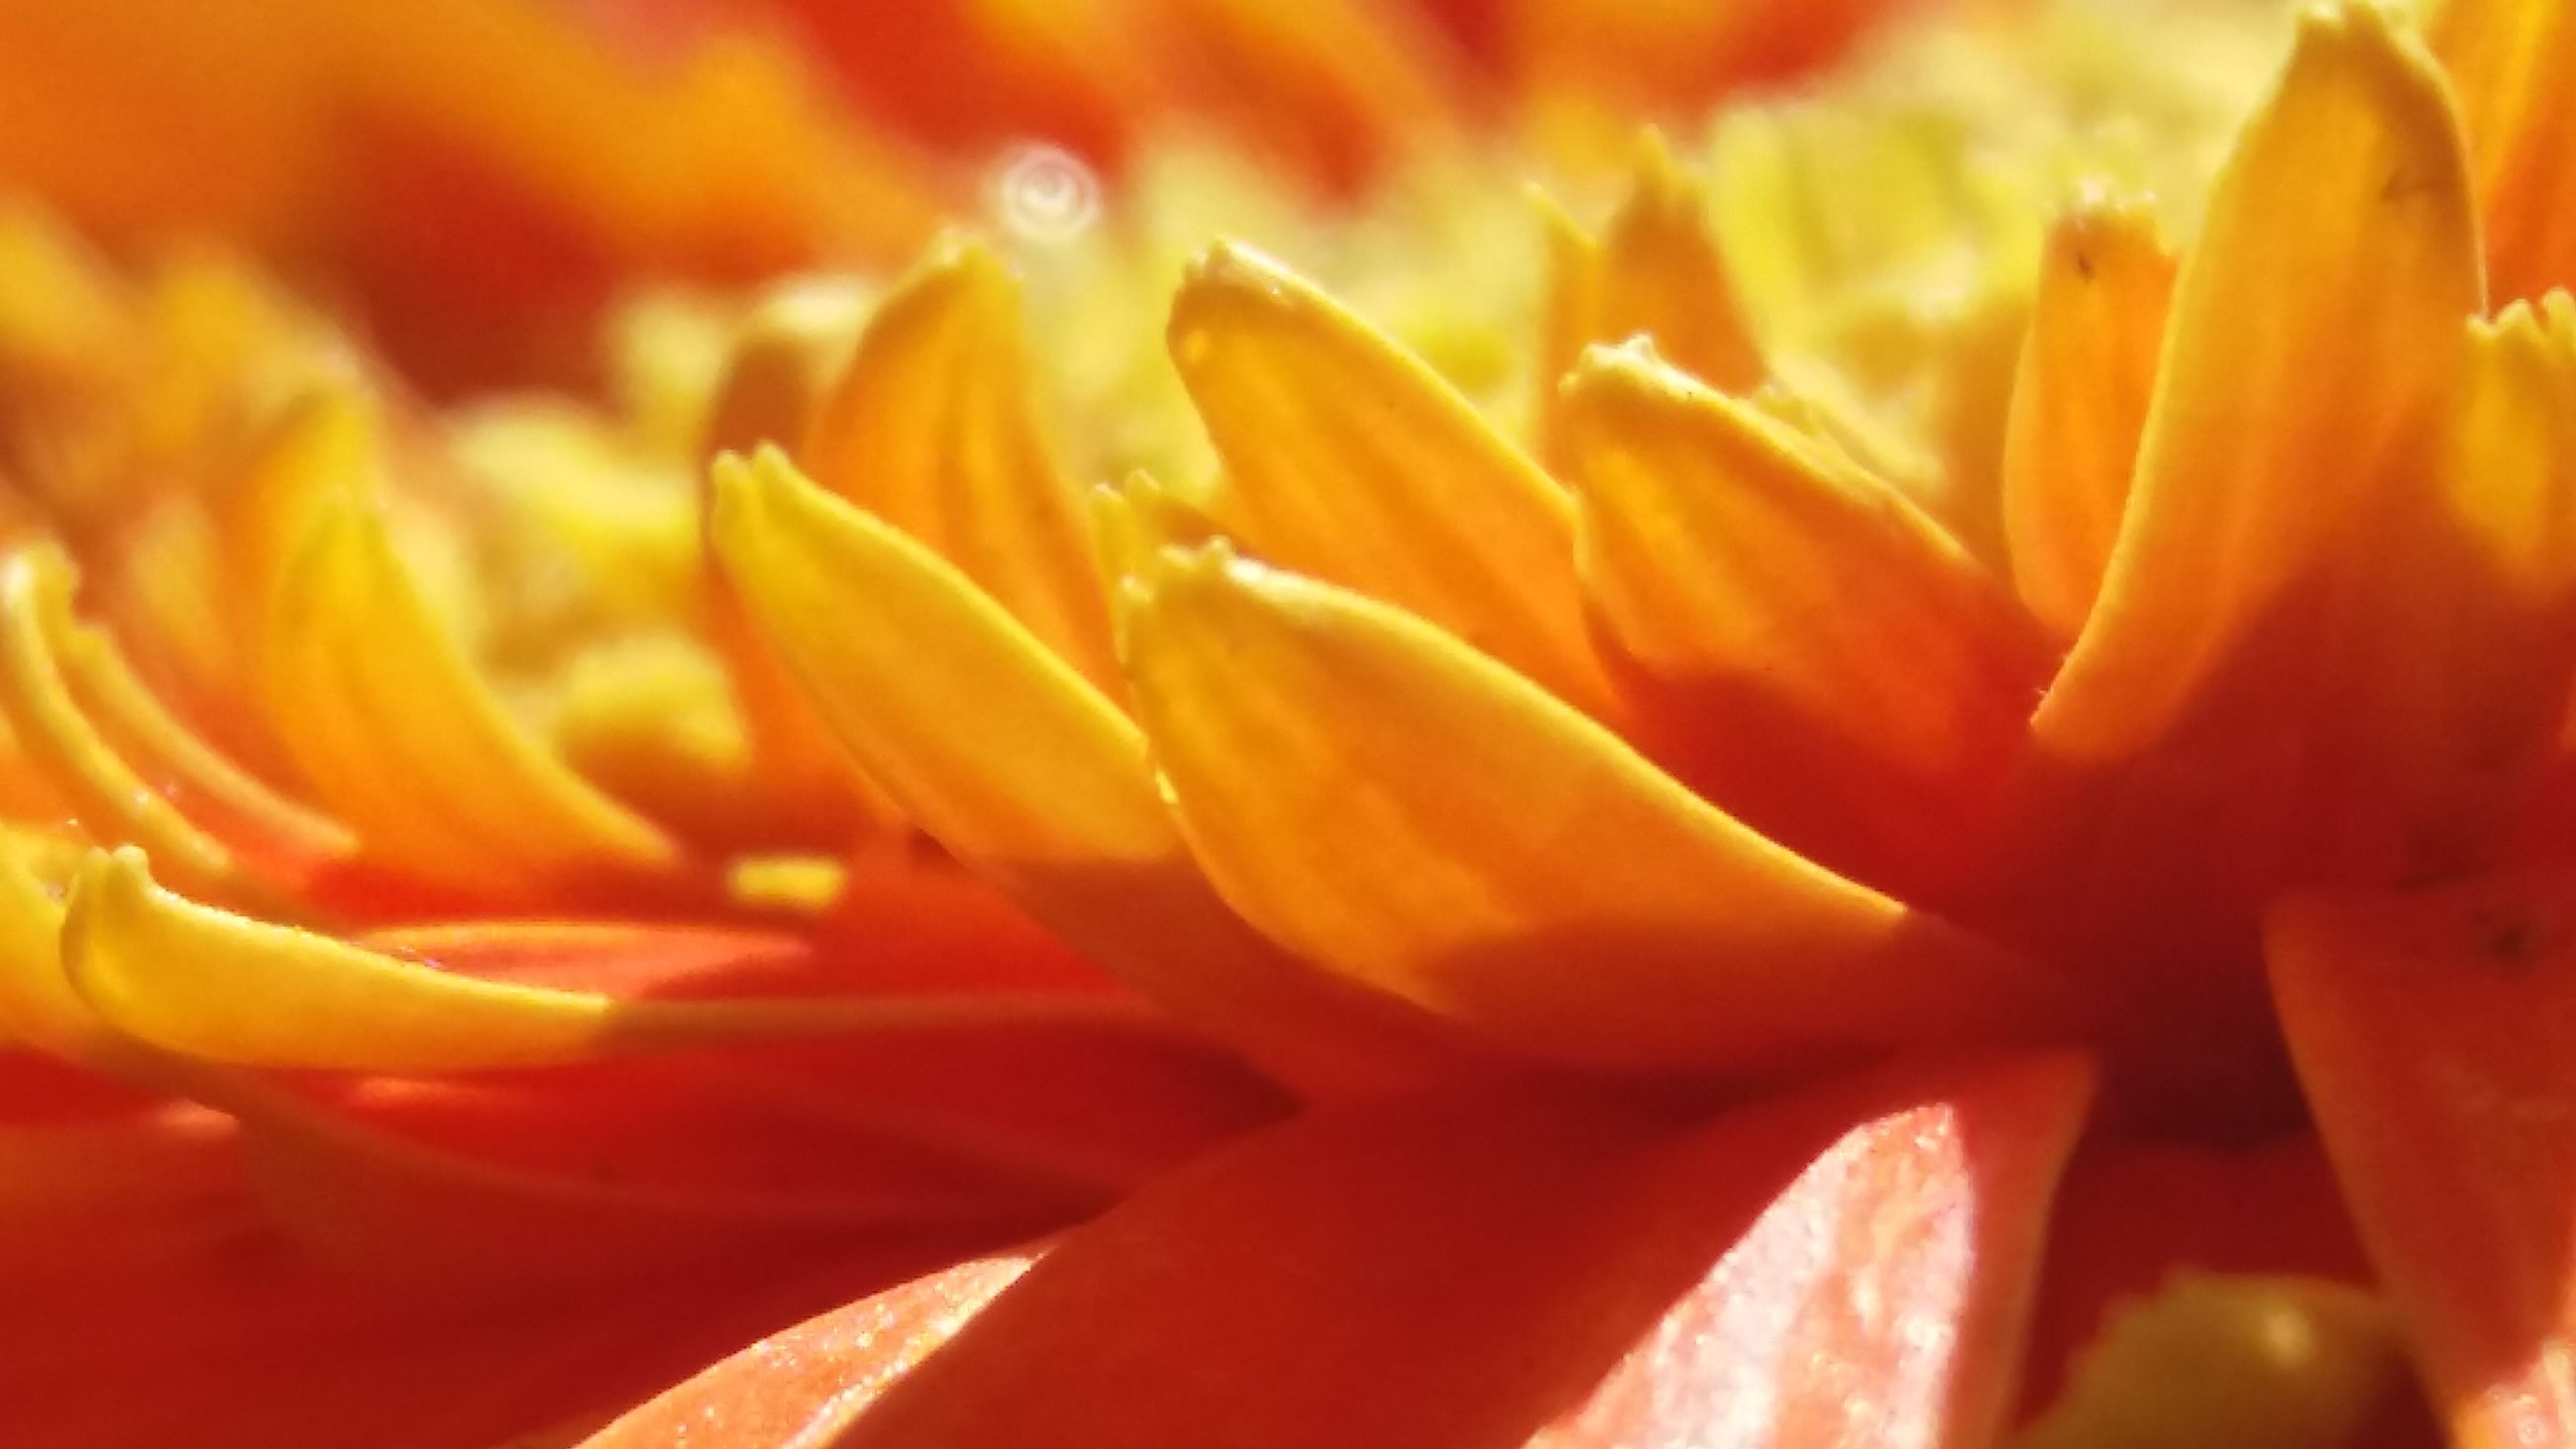 flower, petal, nature, flower head, beauty in nature, growth, fragility, plant, backgrounds, full frame, freshness, selective focus, no people, yellow, blooming, close-up, soft focus, day lily, outdoors, day